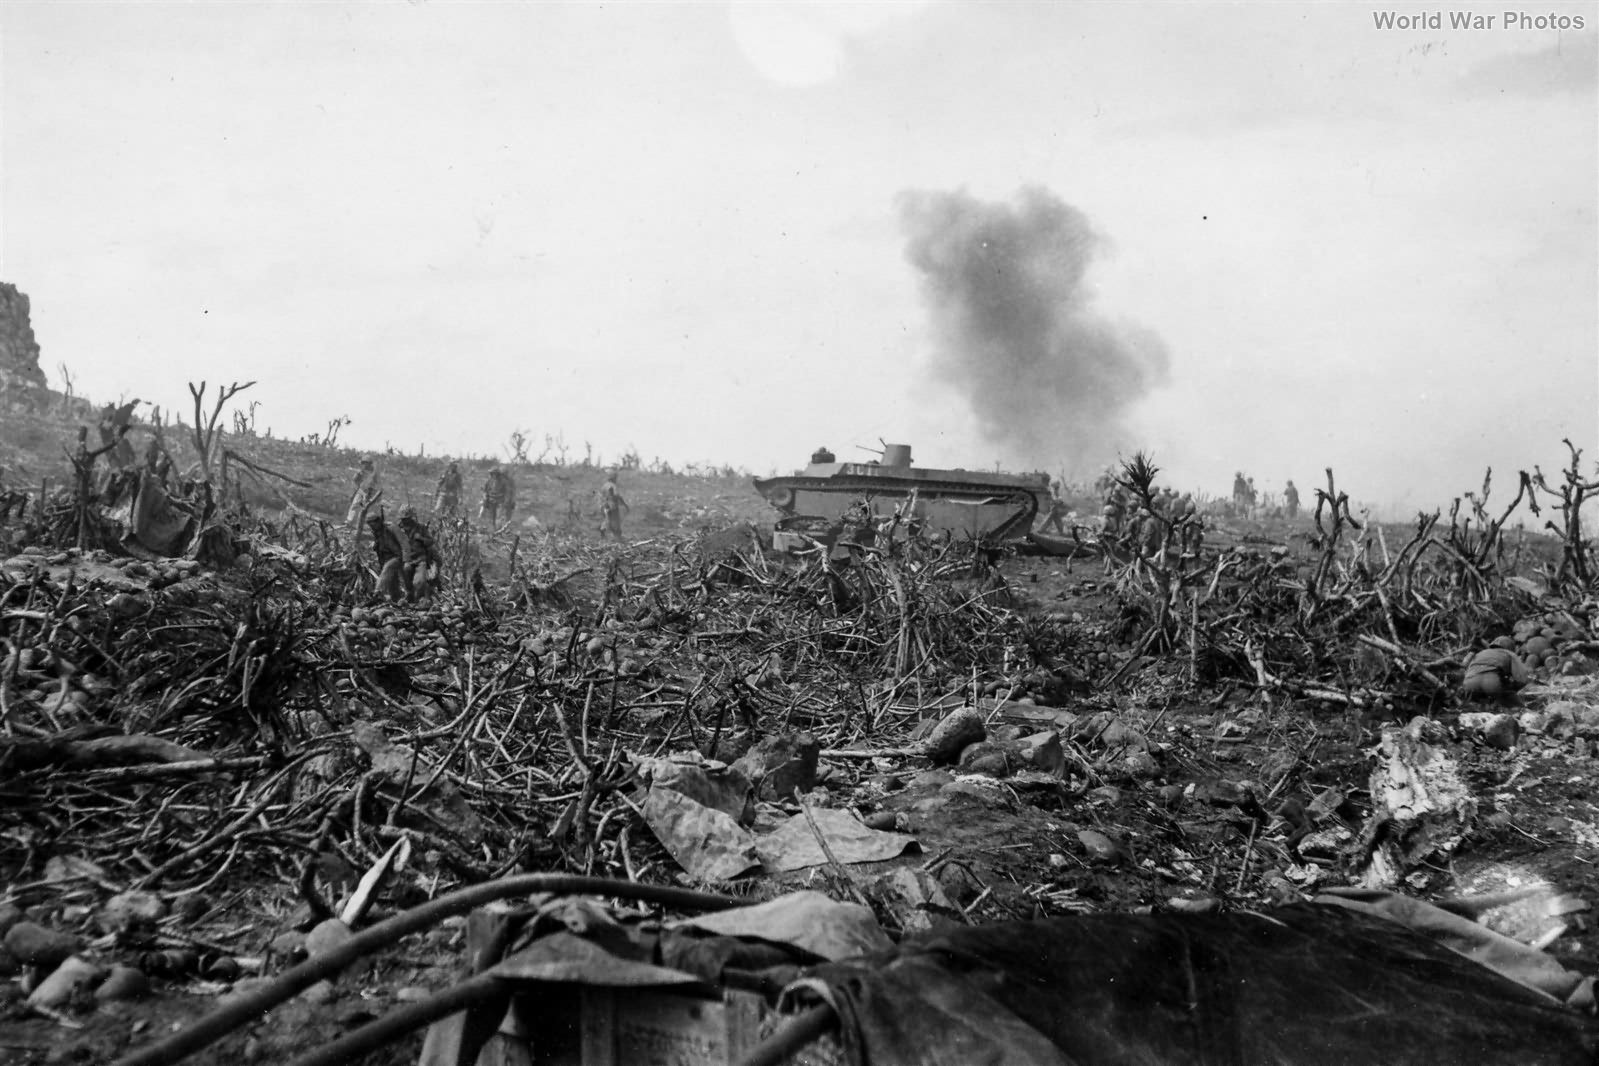 Marine LVT under mortar fire 23feb45